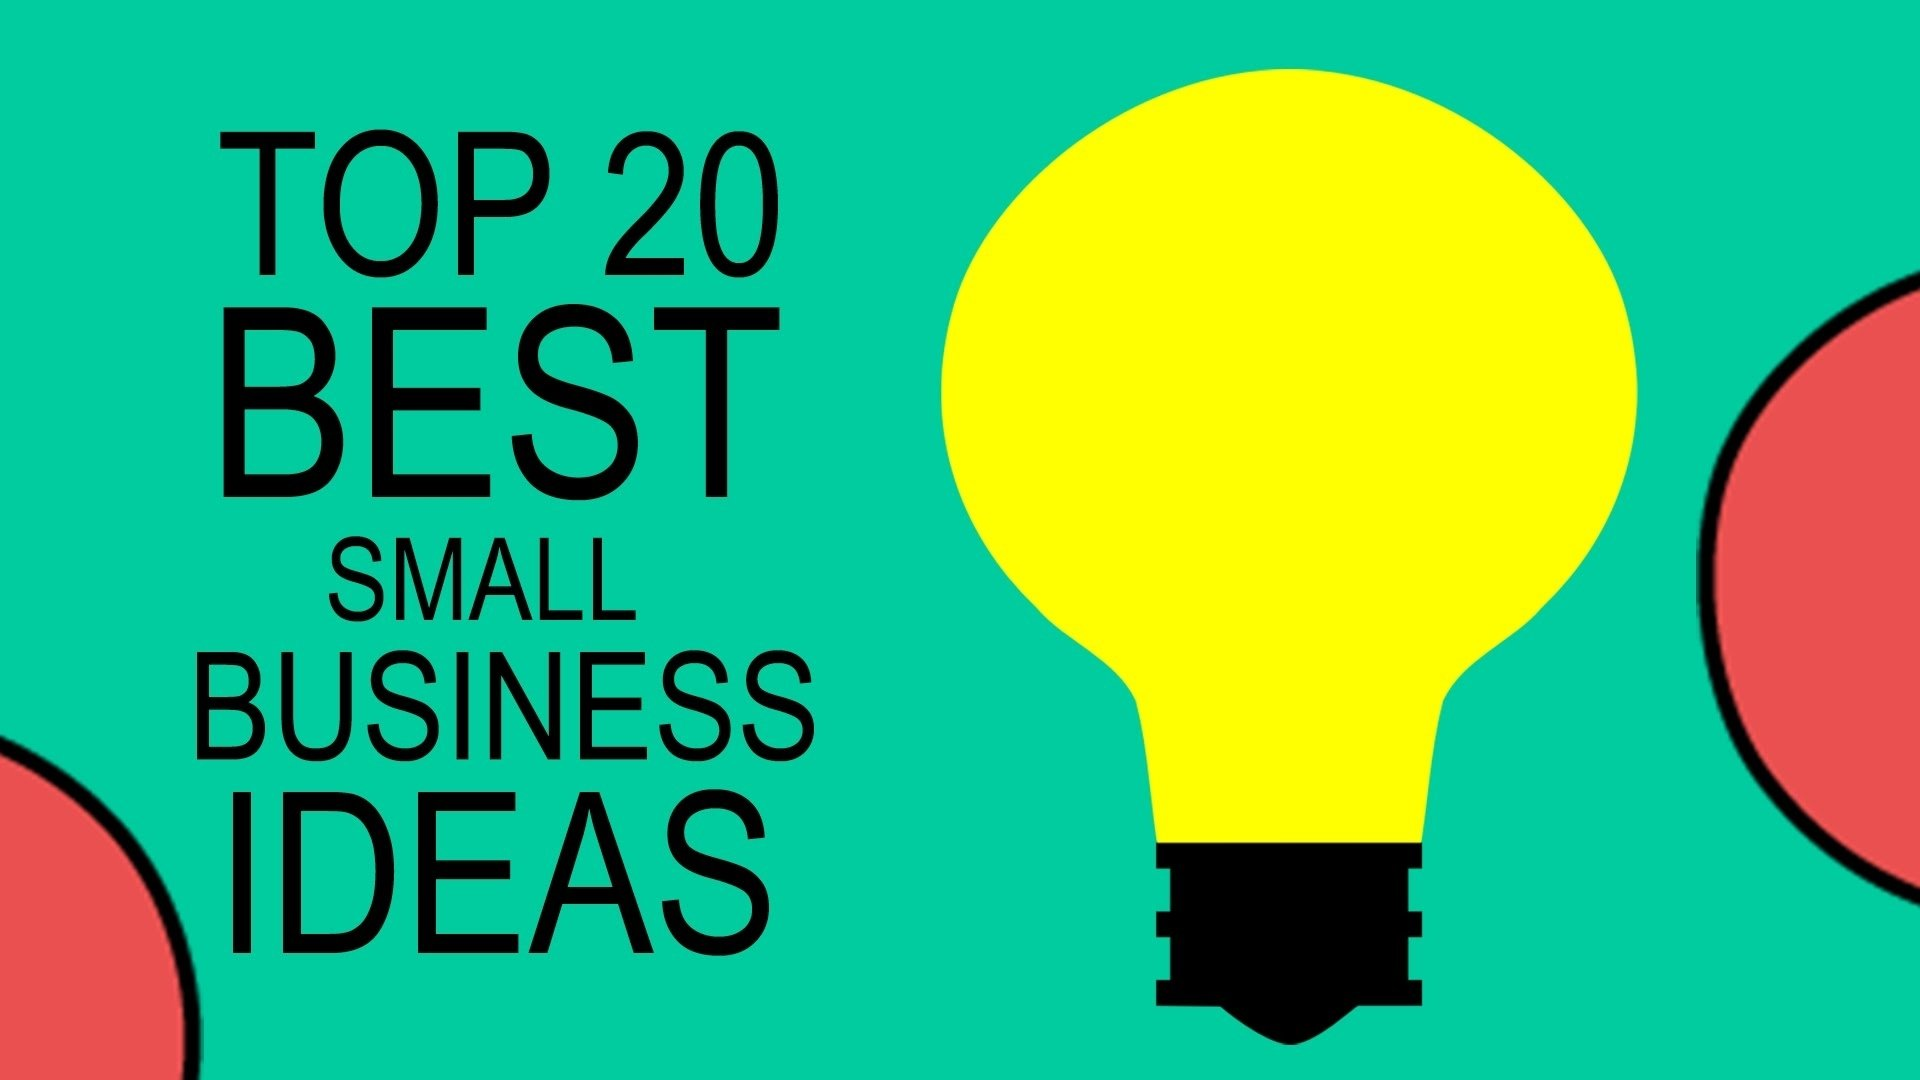 10 Awesome Ideas For A Small Business top 20 best small business ideas for beginners in 2017 youtube 7